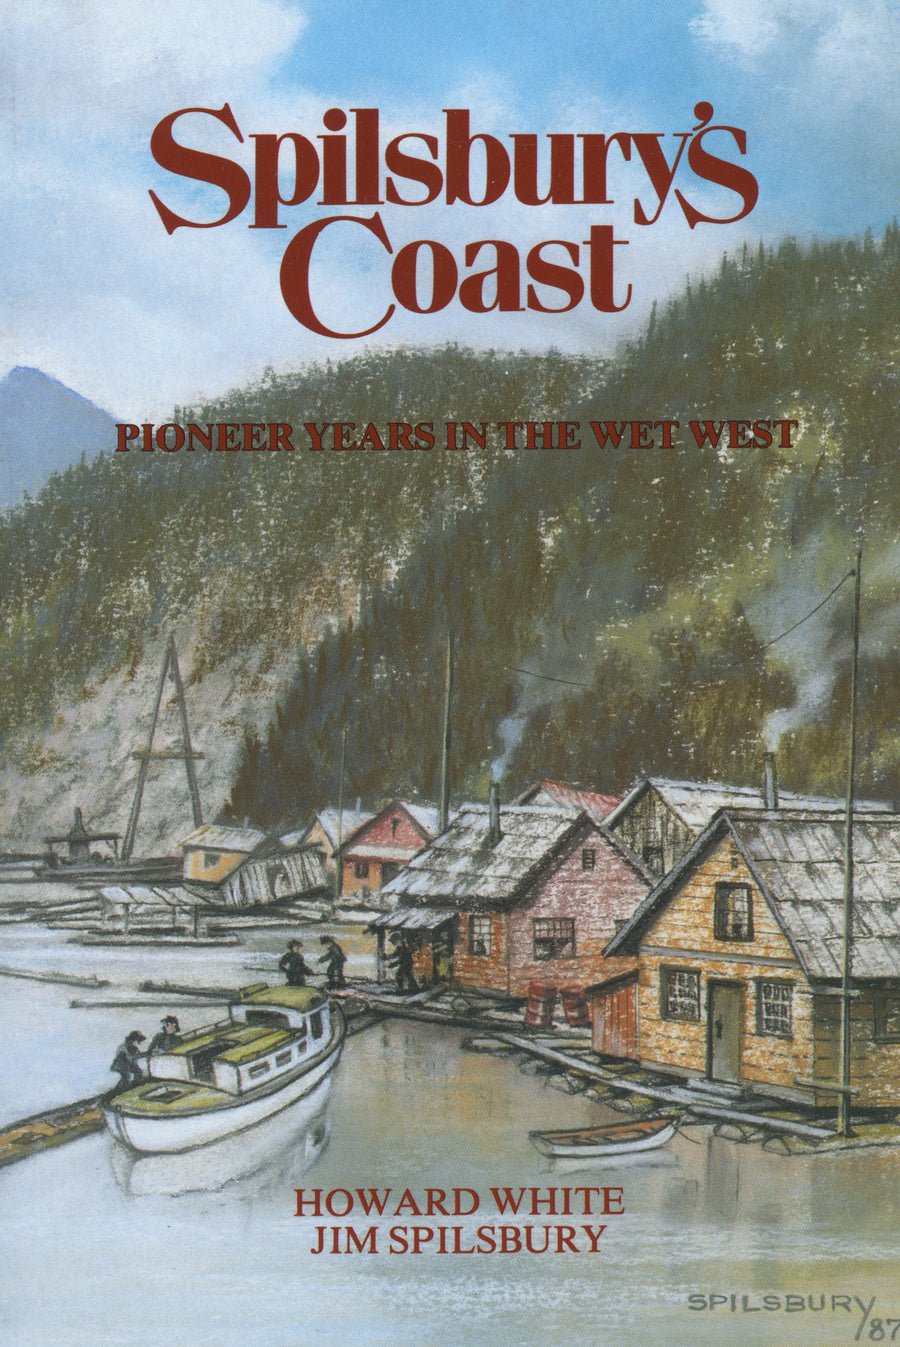 Spilsbury's Coast : Pioneer Years in the Wet West